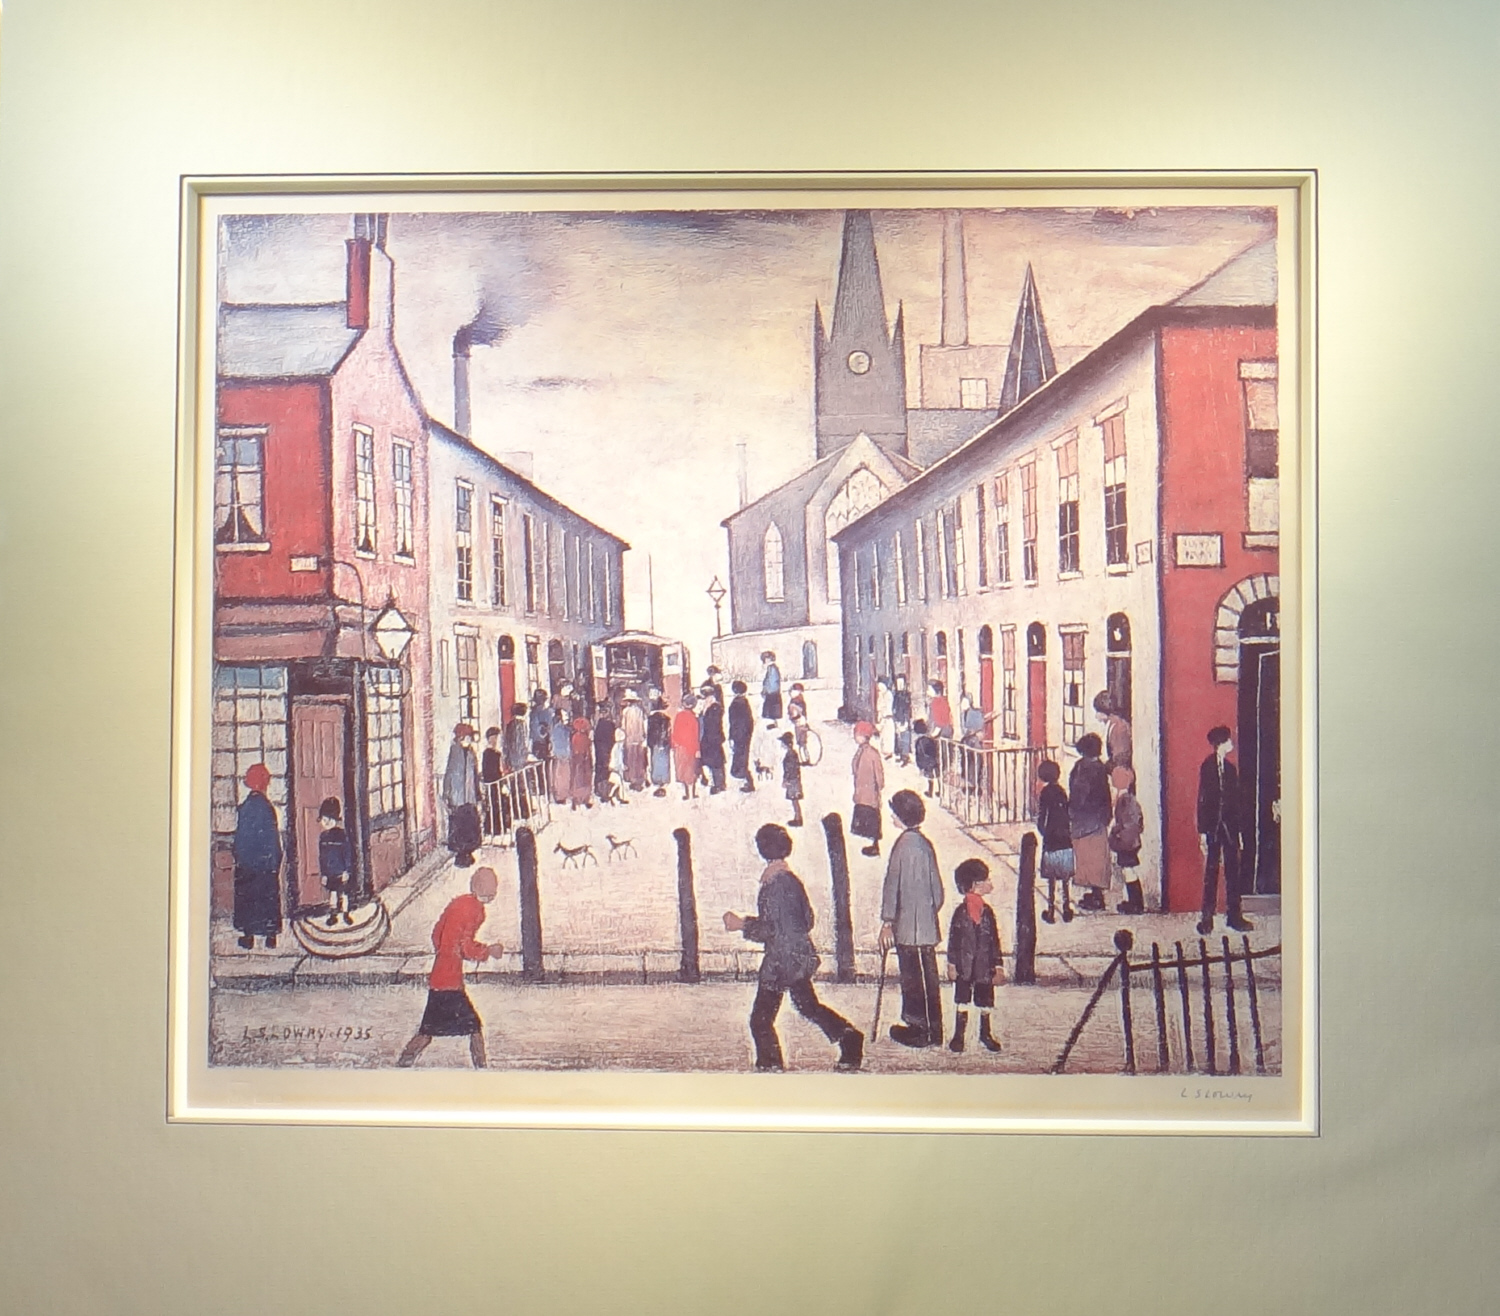 lowry fever van signed print mounted